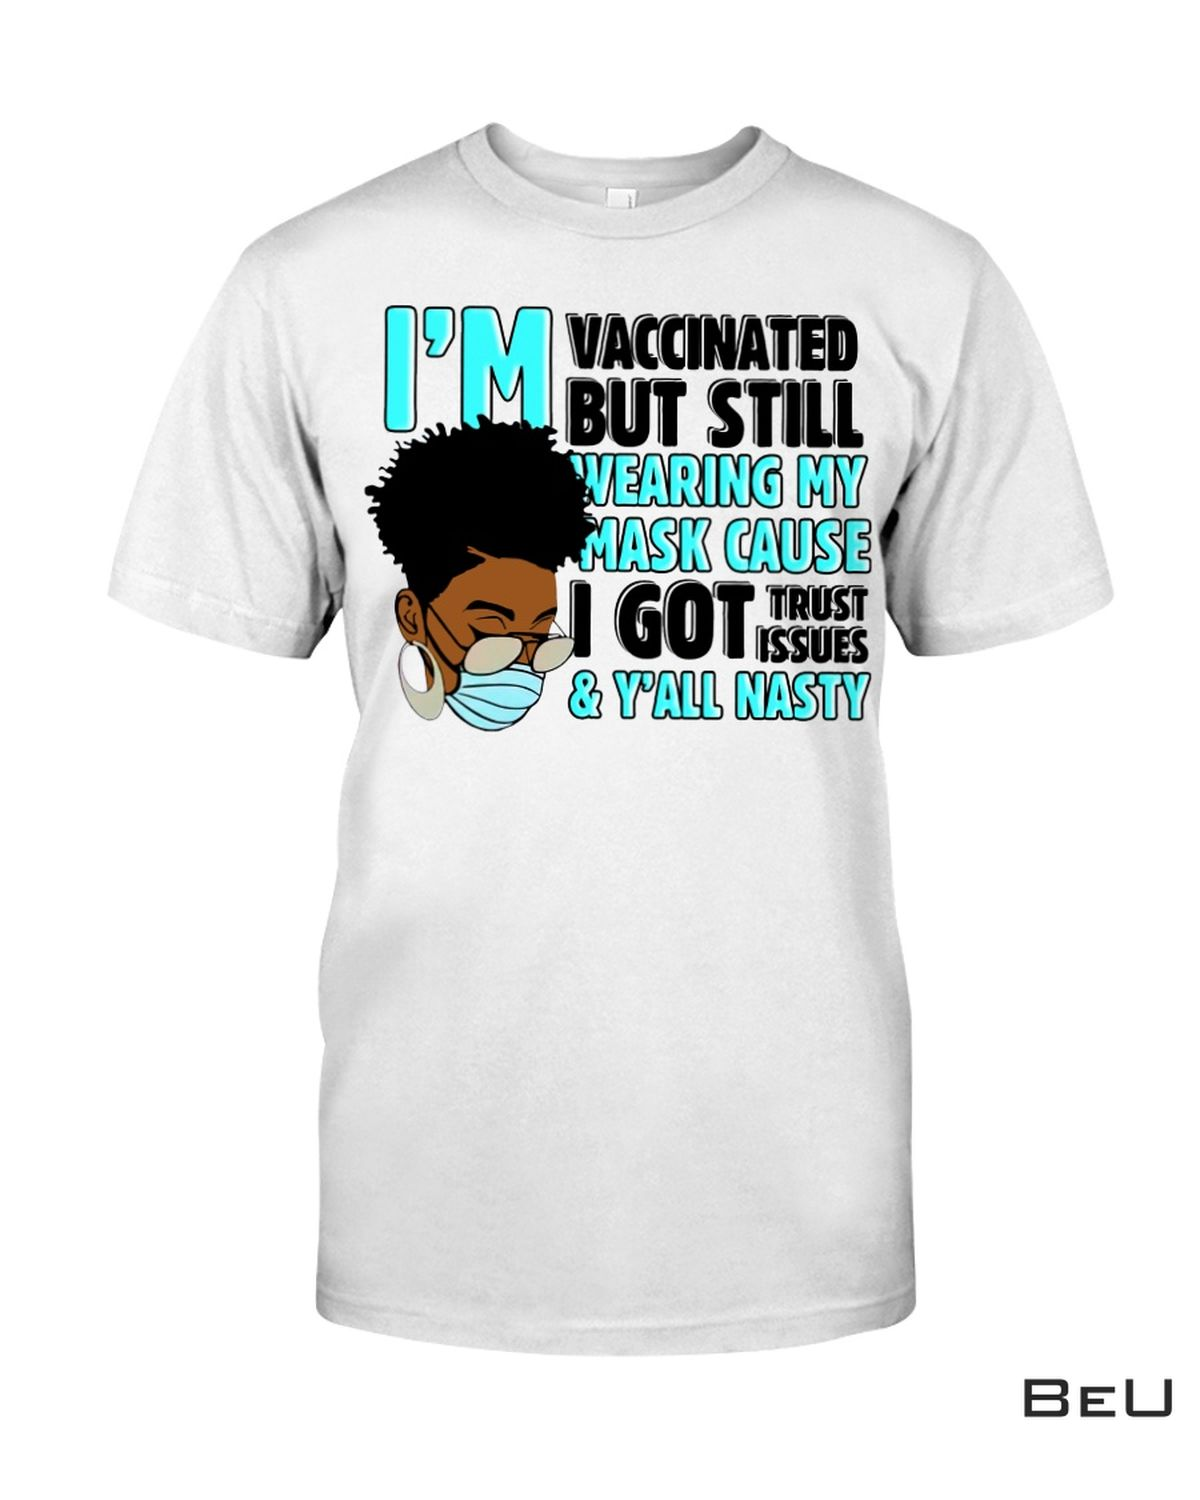 Print On Demand I Am Vaccinated But Still Wearing My Mask Shirt, hoodie, tank top